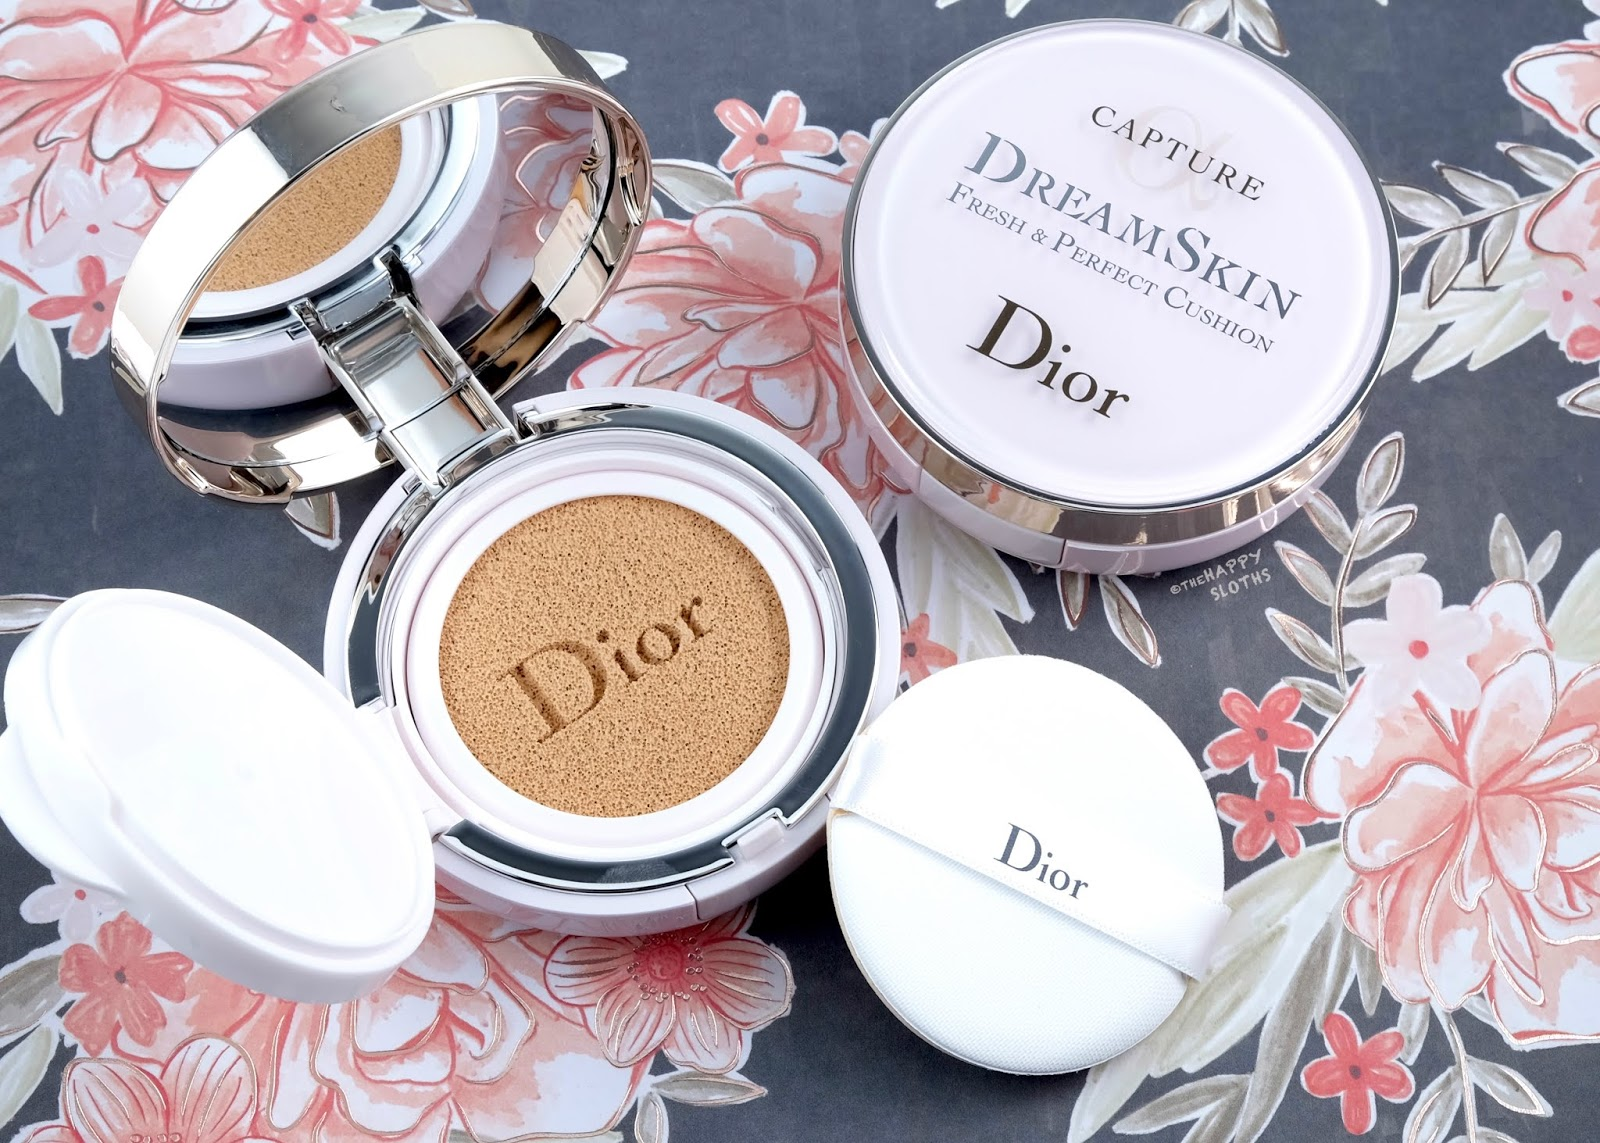 Dior   Capture Dreamskin Fresh & Perfect Cushion: Review and Swatches